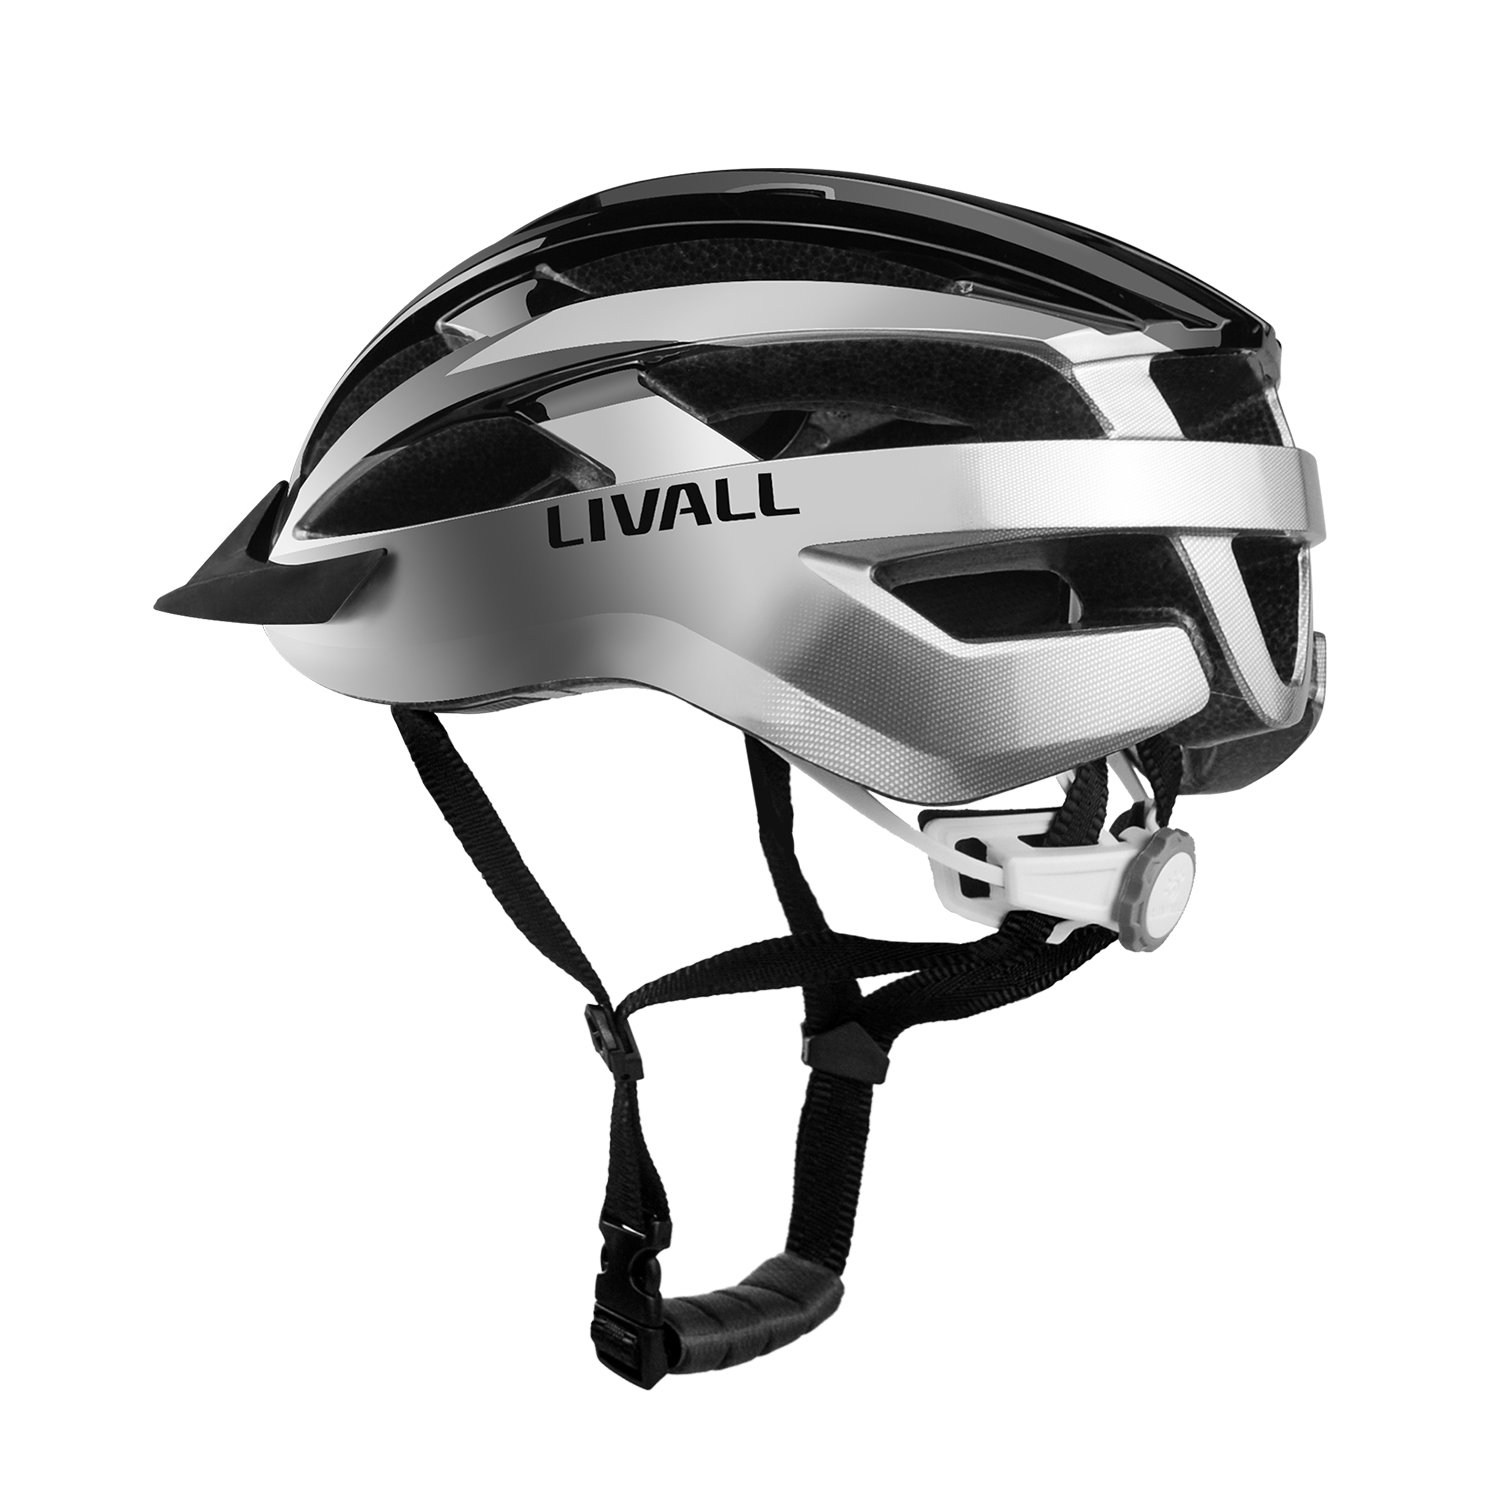 Livall MT1 Smart Bike Helmet,Wireless Turn Signals Remote Tail Lights,Blautooth Speakers,Build-in mic,Music&Call,Walkie-Talkie, SOS Alert, CPSC&EN1078 Certified Cycling Mountain Blautooth Helmet ¡­